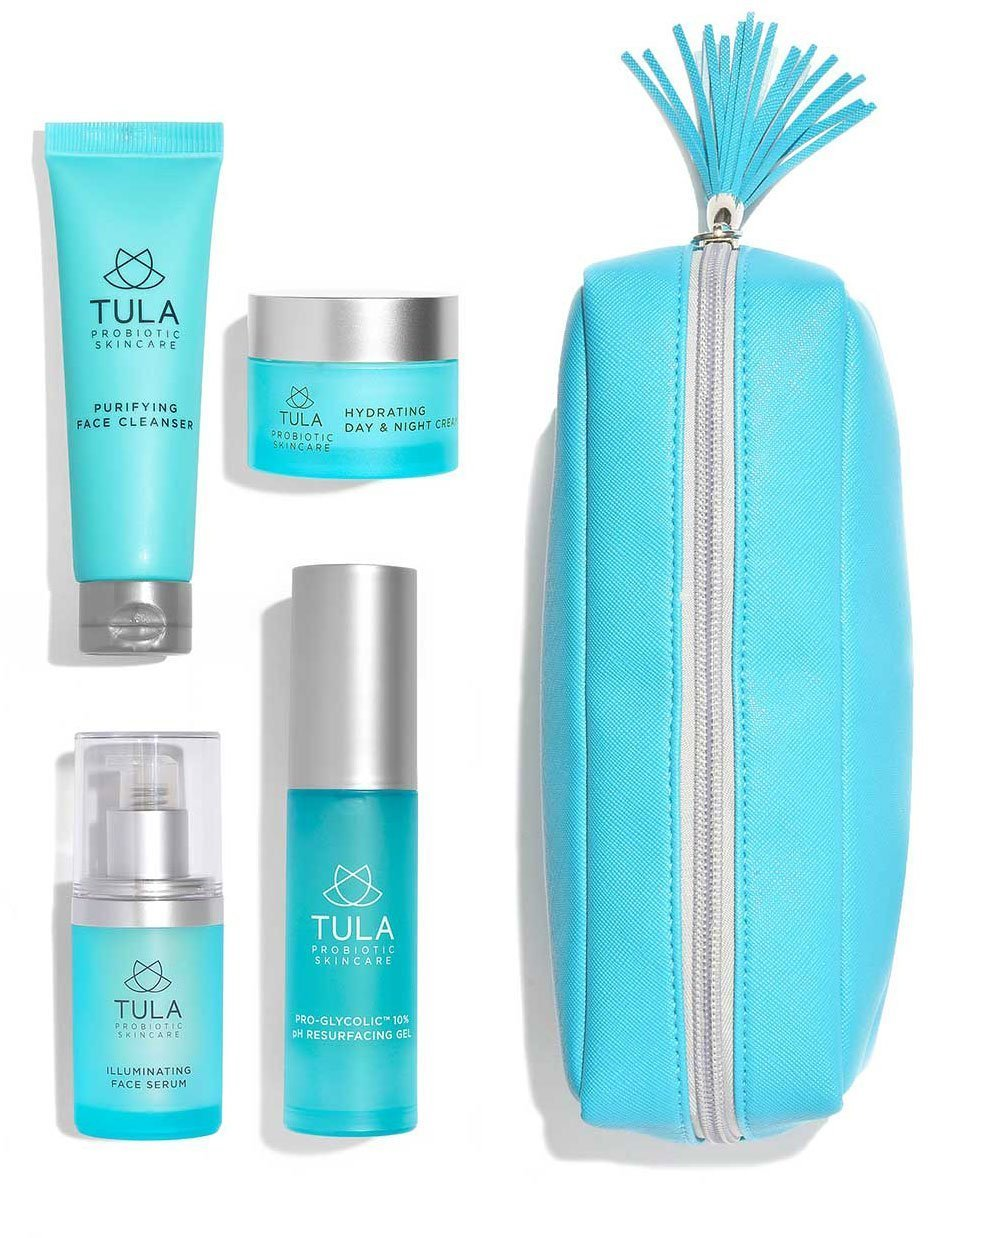 TULA Probiotic Skin Care Discovery Kit - Travel-friendly Facial Cleanser, Day & Night Moisturizer, Illuminating Serum & Pro-Glycolic Resurfacing Gel for Glowing and Youthful Skin by TULA